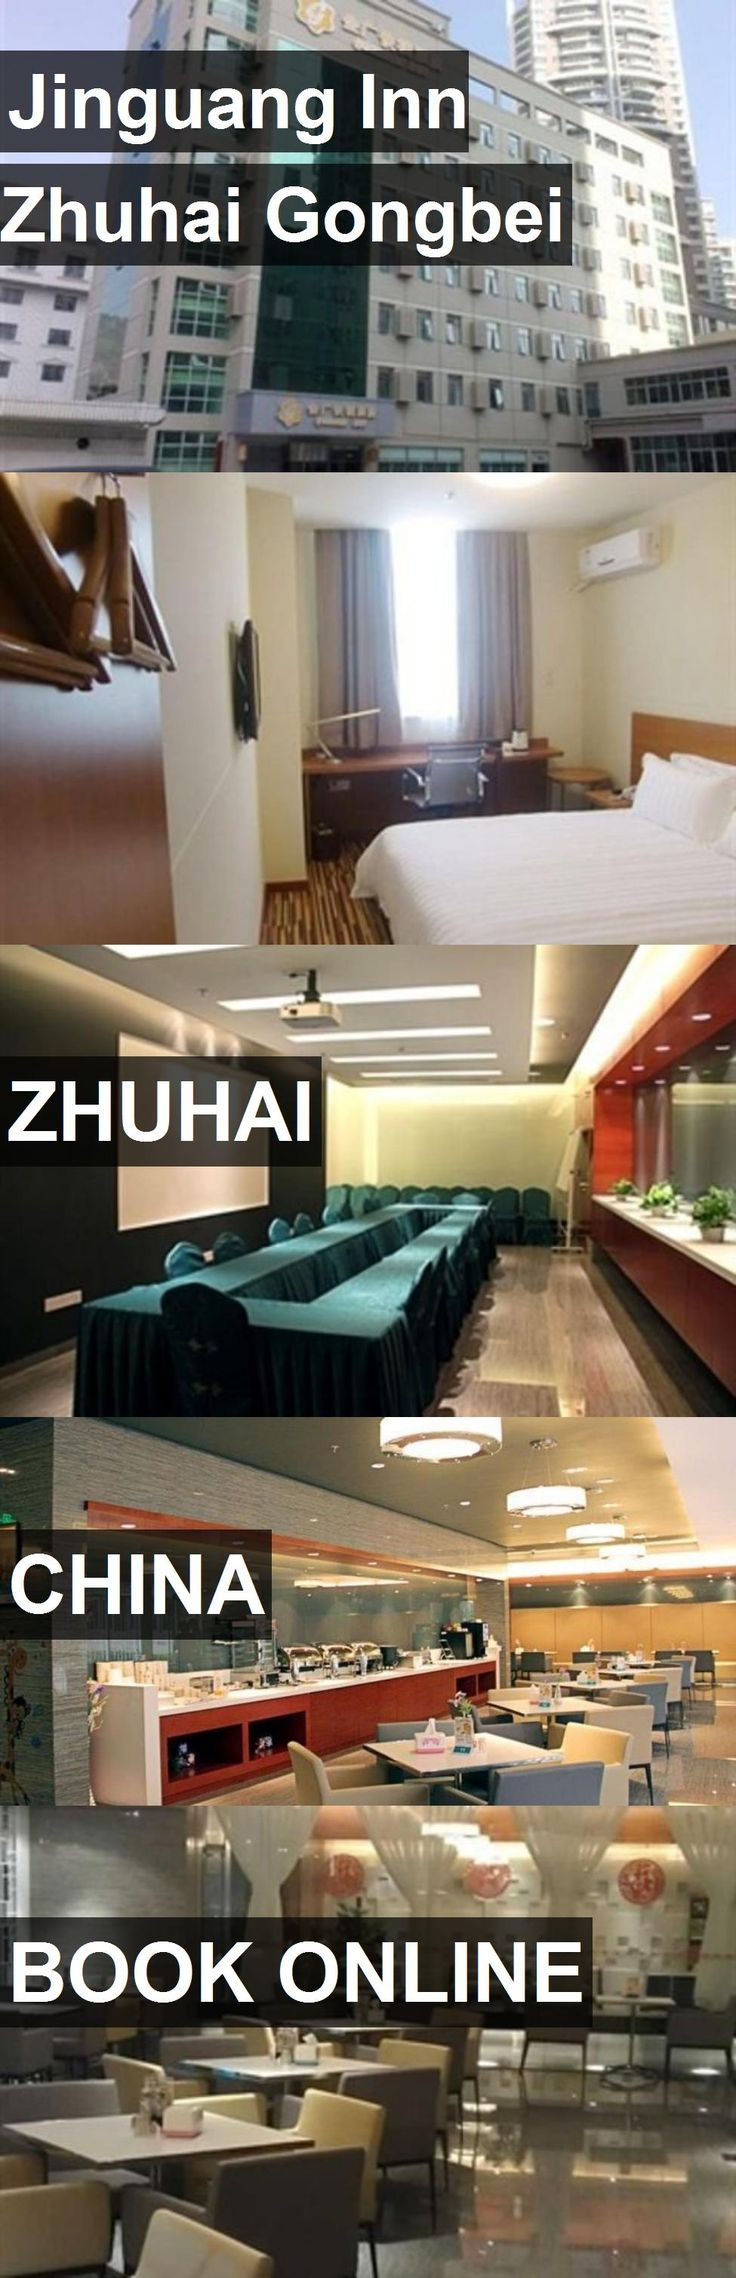 Hotel Jinguang Inn Zhuhai Gongbei in Zhuhai, China. For more information, photos, reviews and best prices please follow the link. #China #Zhuhai #travel #vacation #hotel